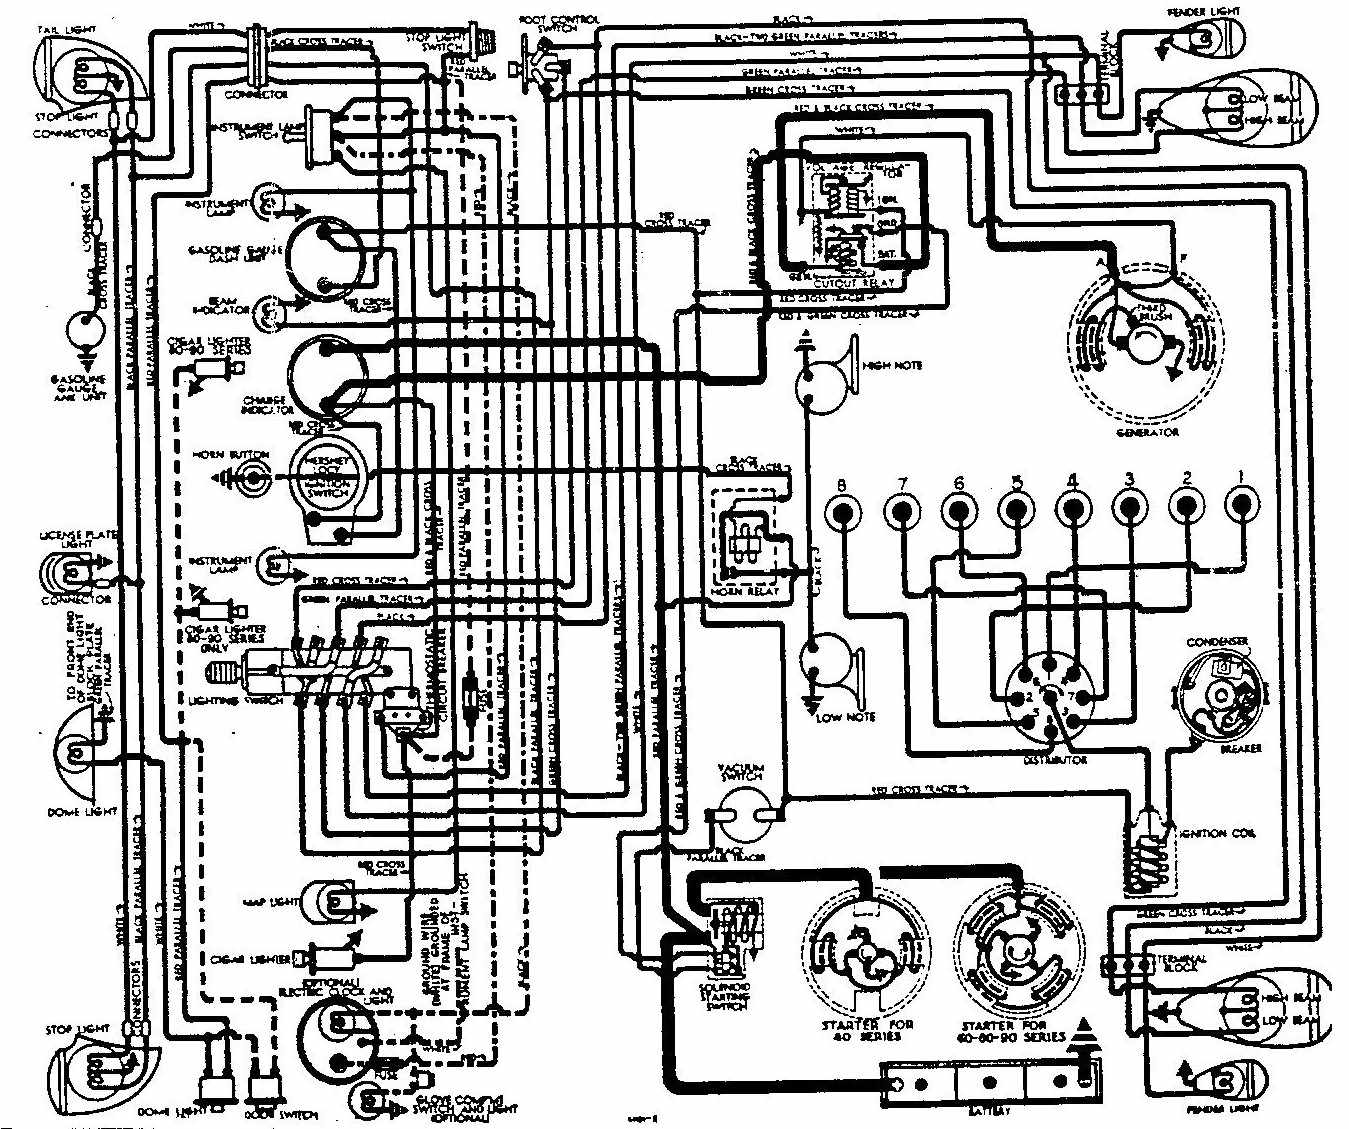 wiring diagram art online wiring diagram Harley Dyna Suspension Diagram buick wiring diagrams best part of wiring diagramwiring diagram 1965 buick wildcat wiring diagram databasewildcat wiring